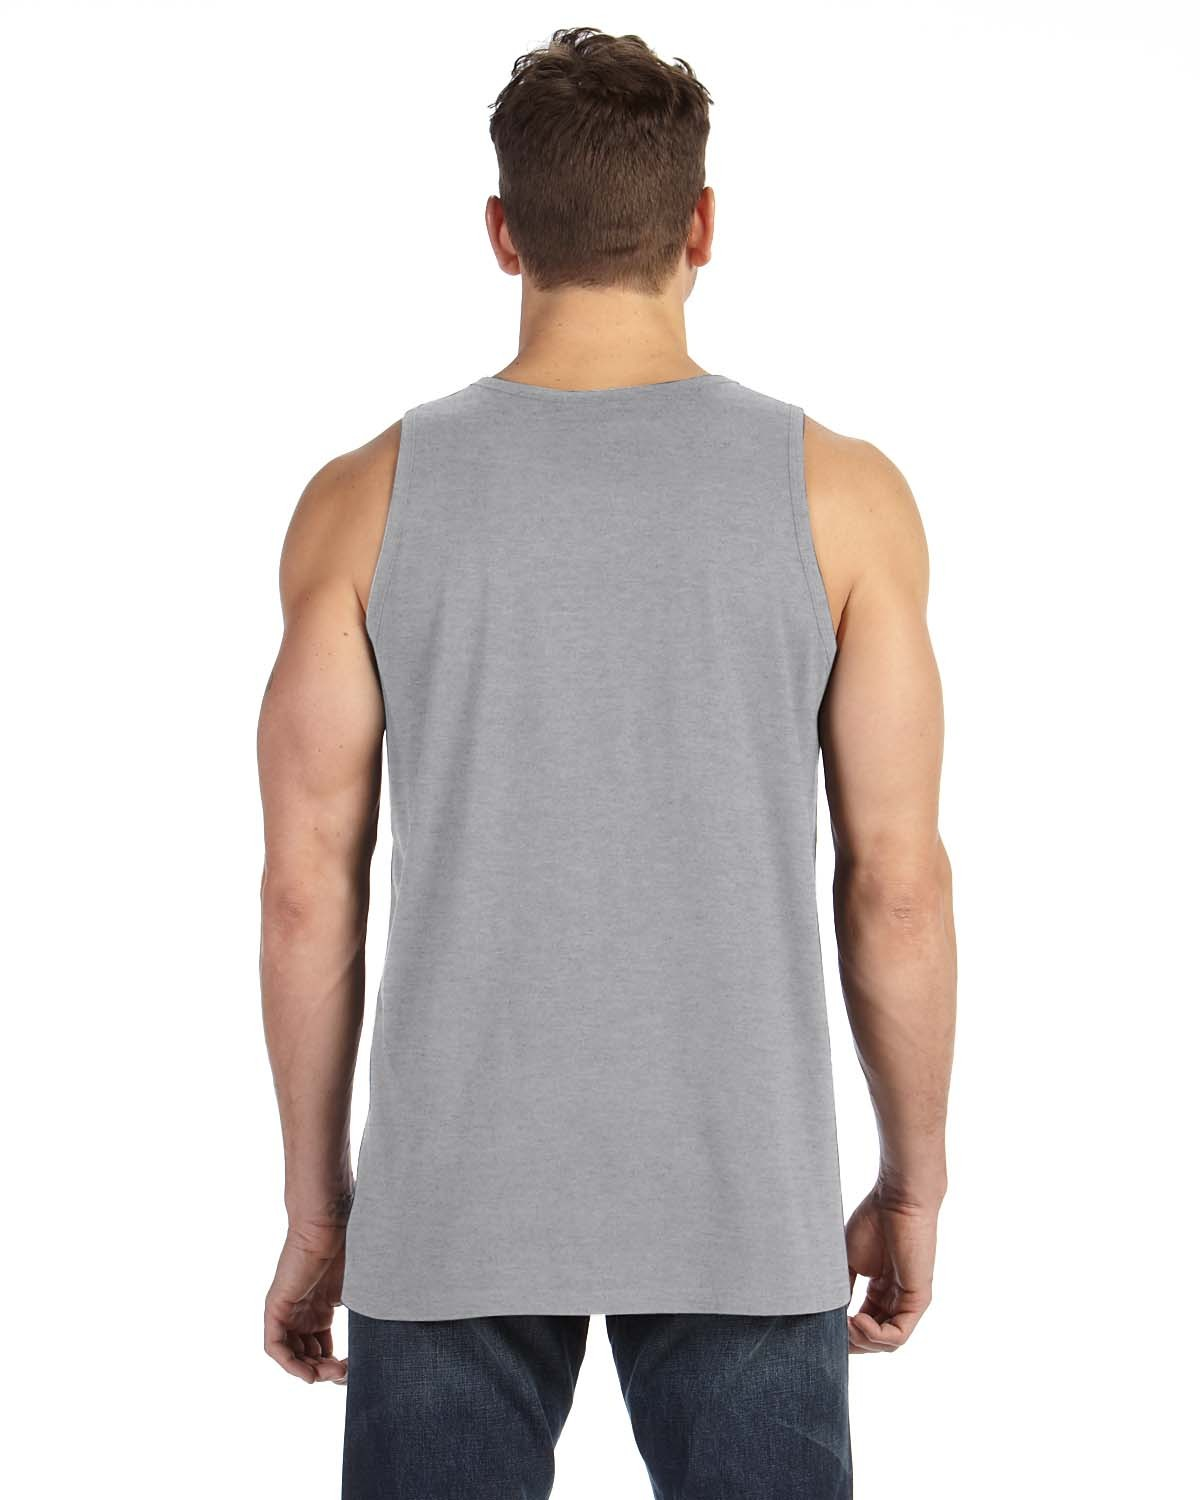 986 Anvil HEATHER GREY